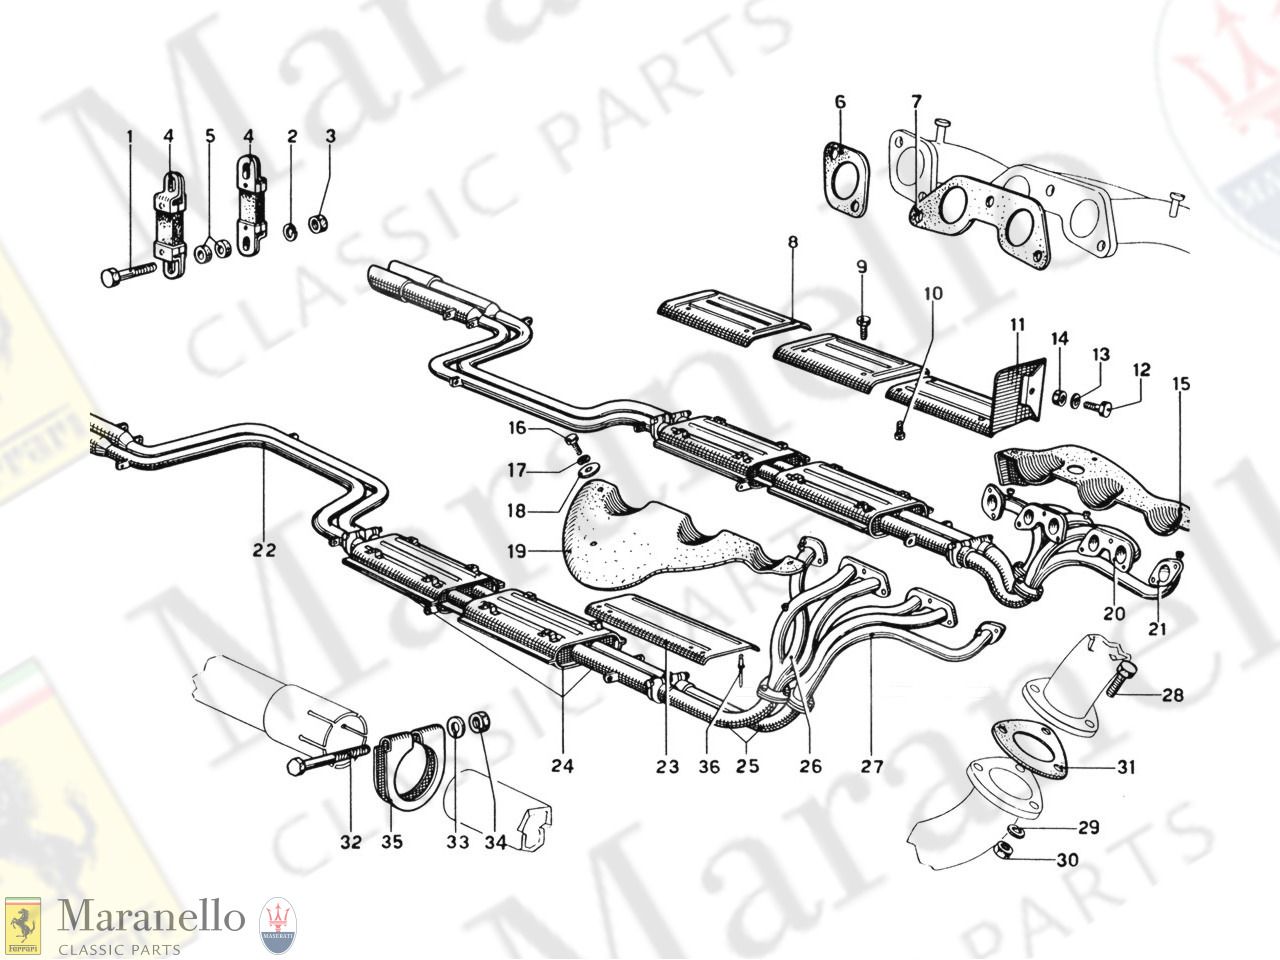 009 - Exhaust Pipes Assembly